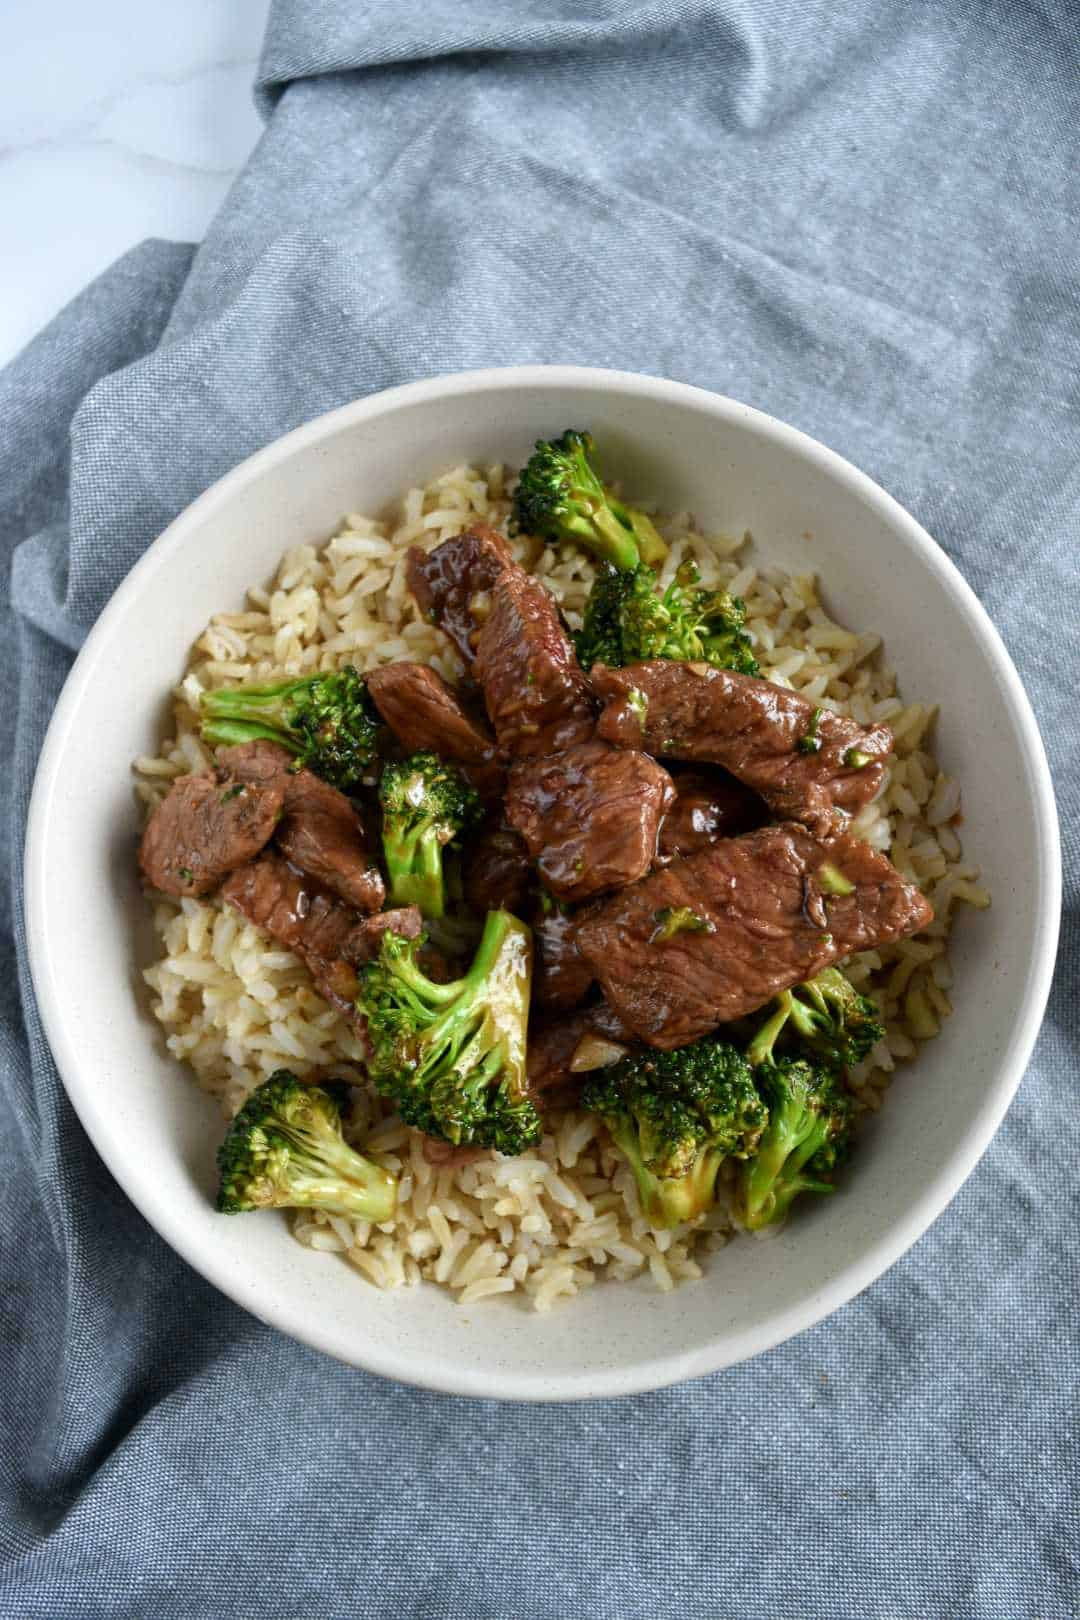 Broccoli and beef stir fry in a white bowl with rice.